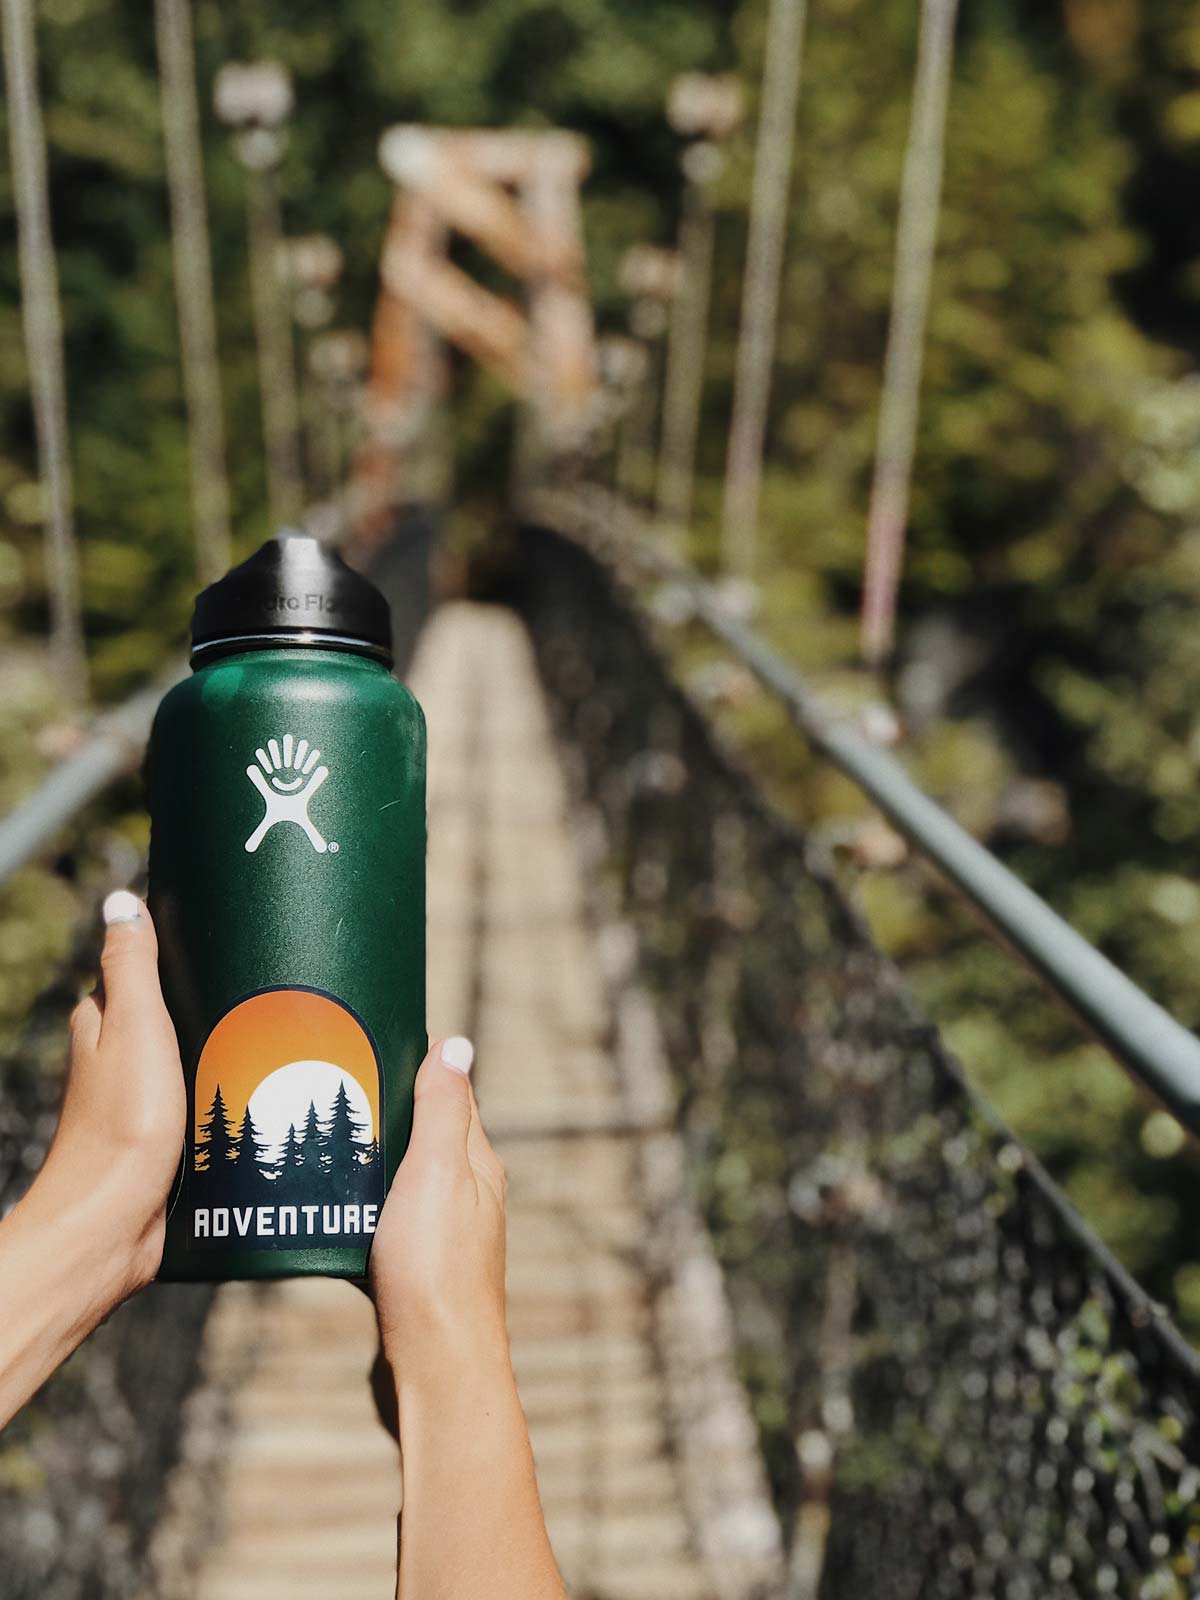 Self Care for Outdoor Adventurers - Stay Hydrated